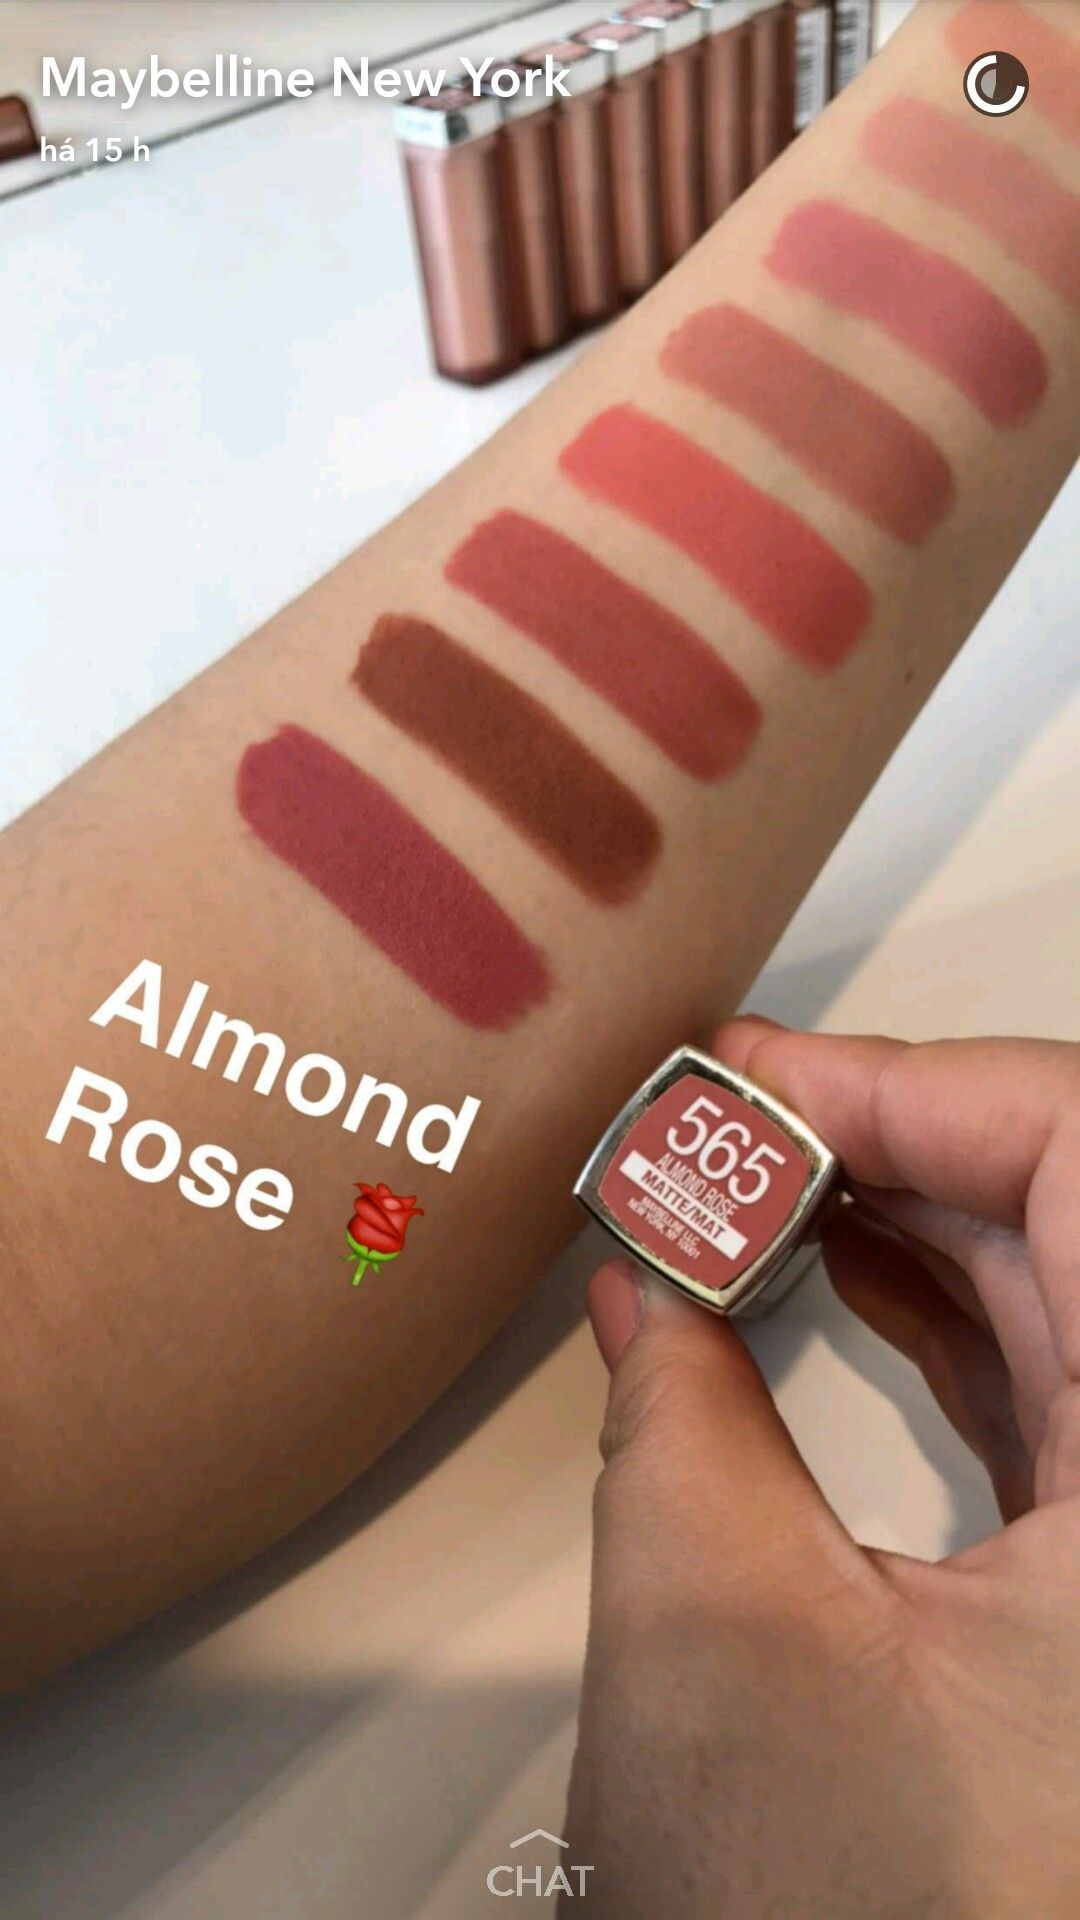 Maybelline nude colors - almond rose | Beauty on my lips